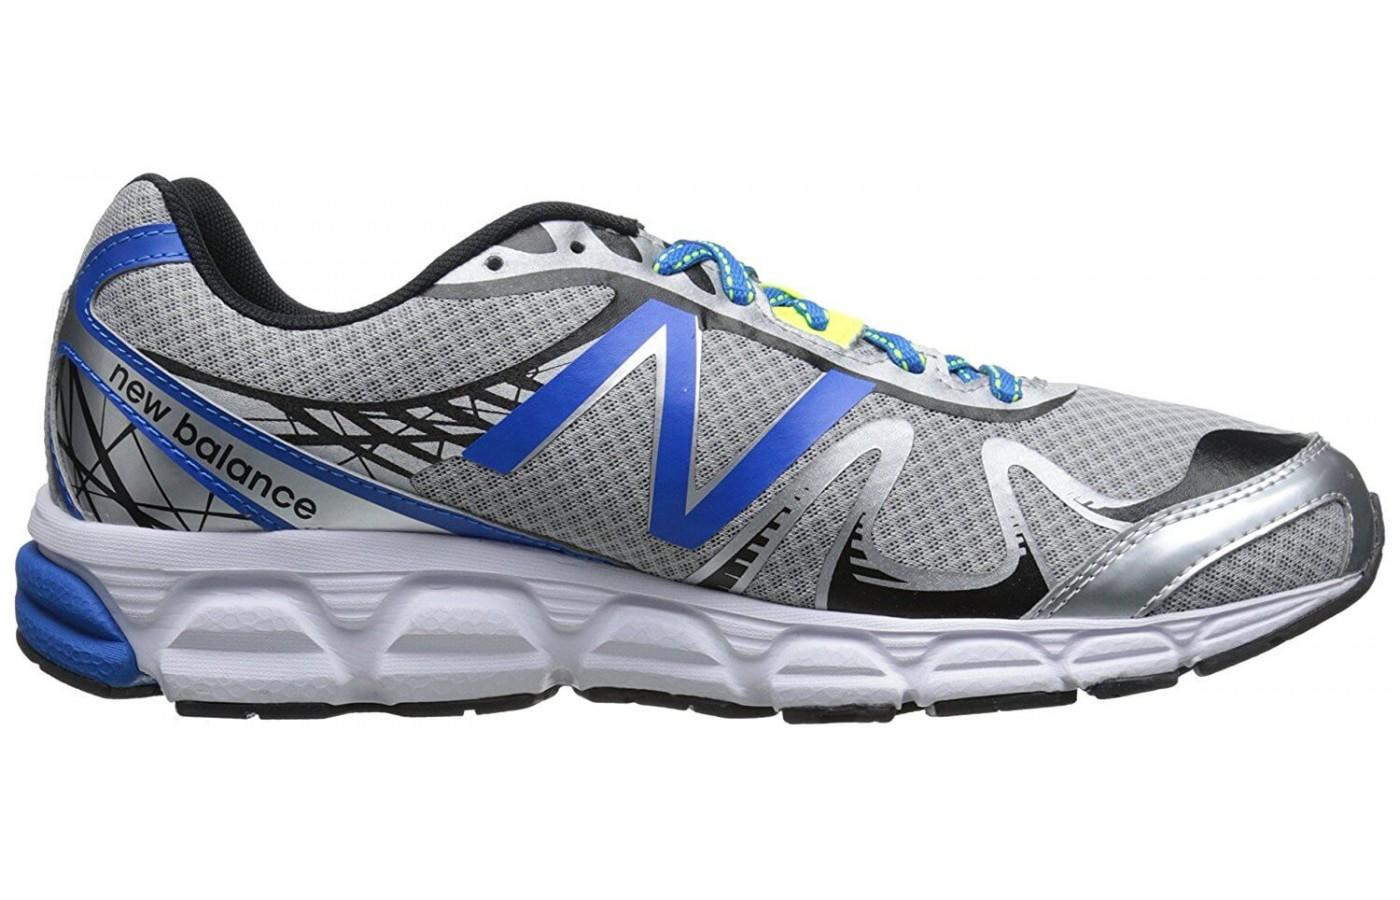 the New Balance 780 v5 provides neutral support for daily running